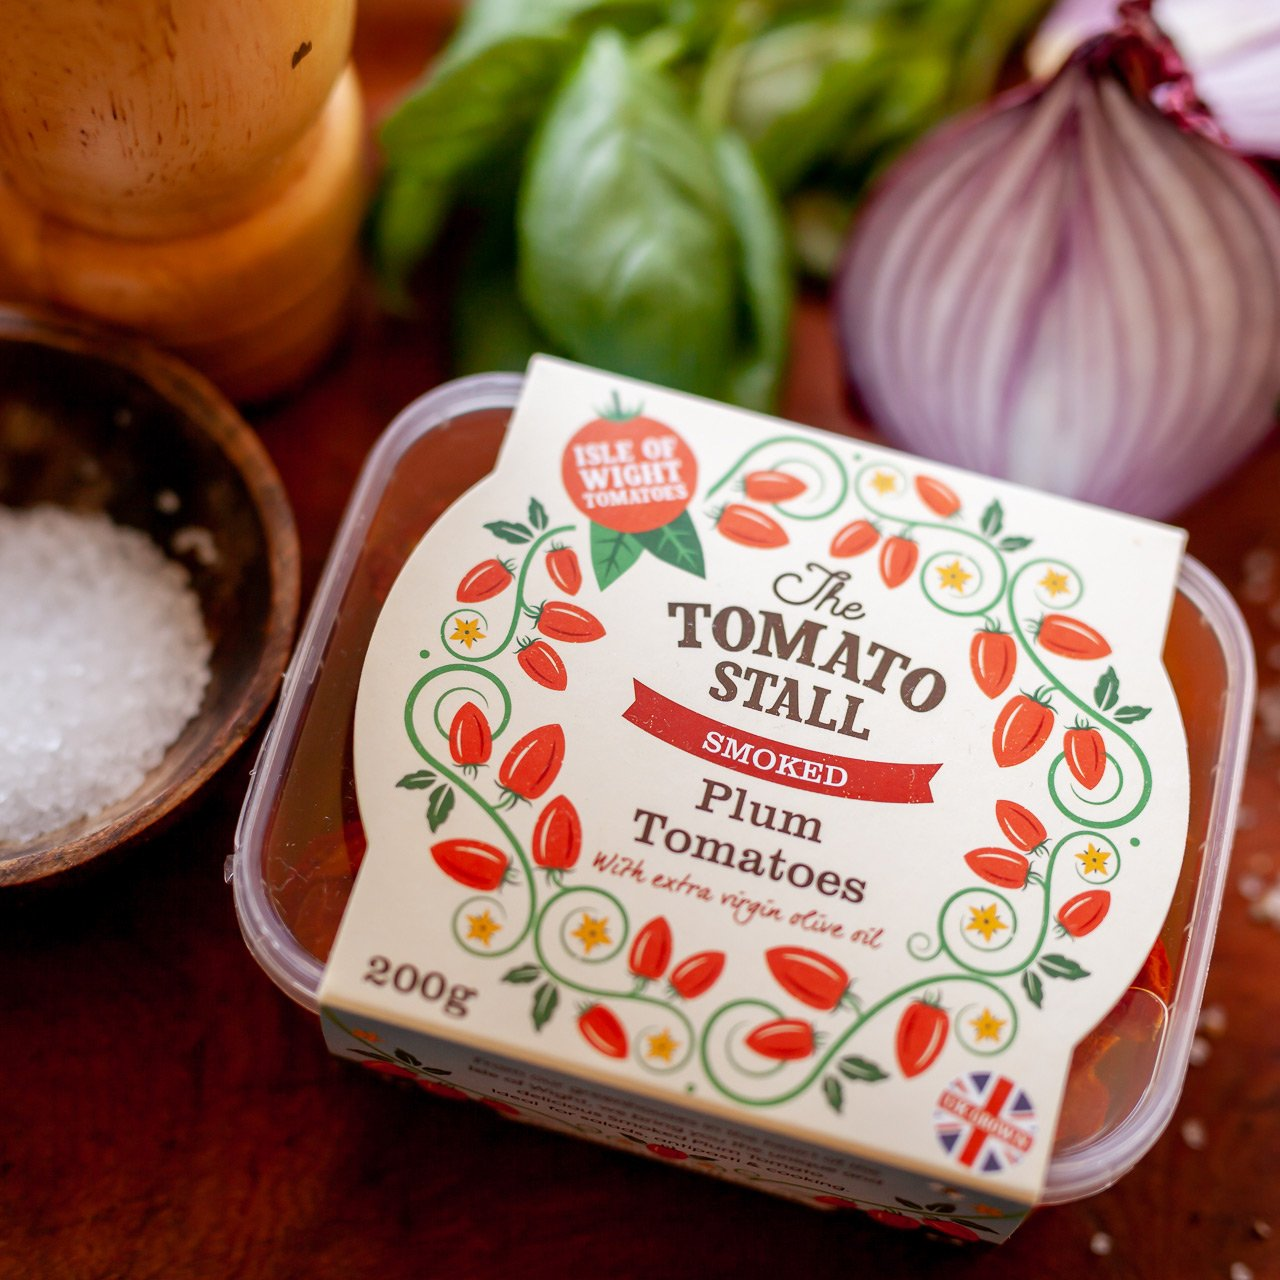 Tomato Stall Roasted Plum Tomatoes packaging design